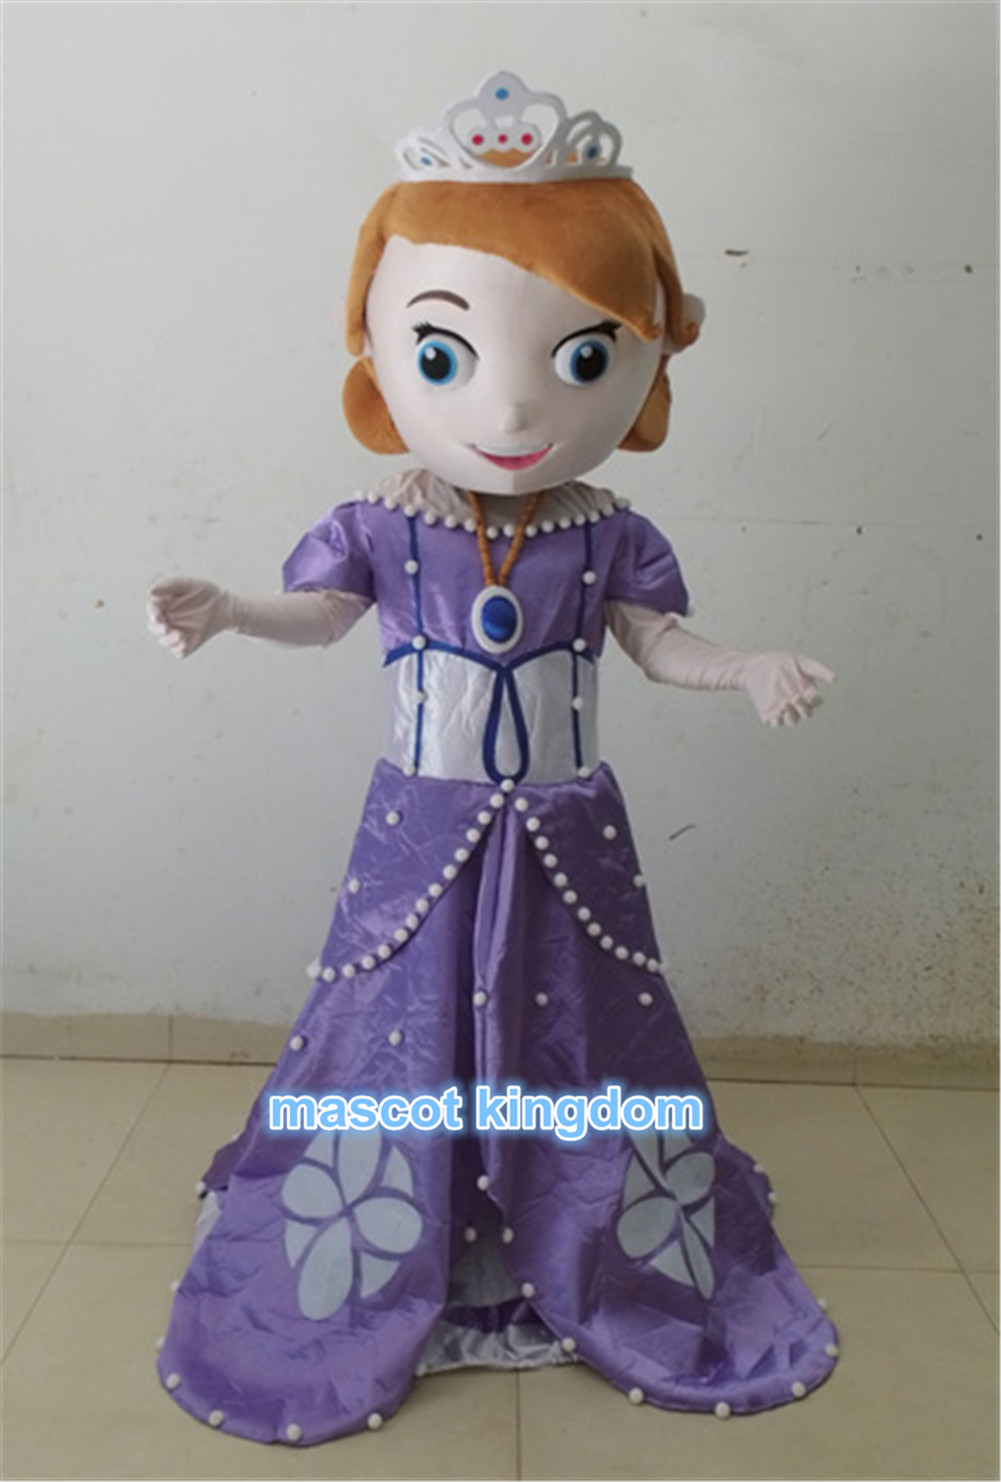 sophia princess mascot costume sofia the first halloween party dress